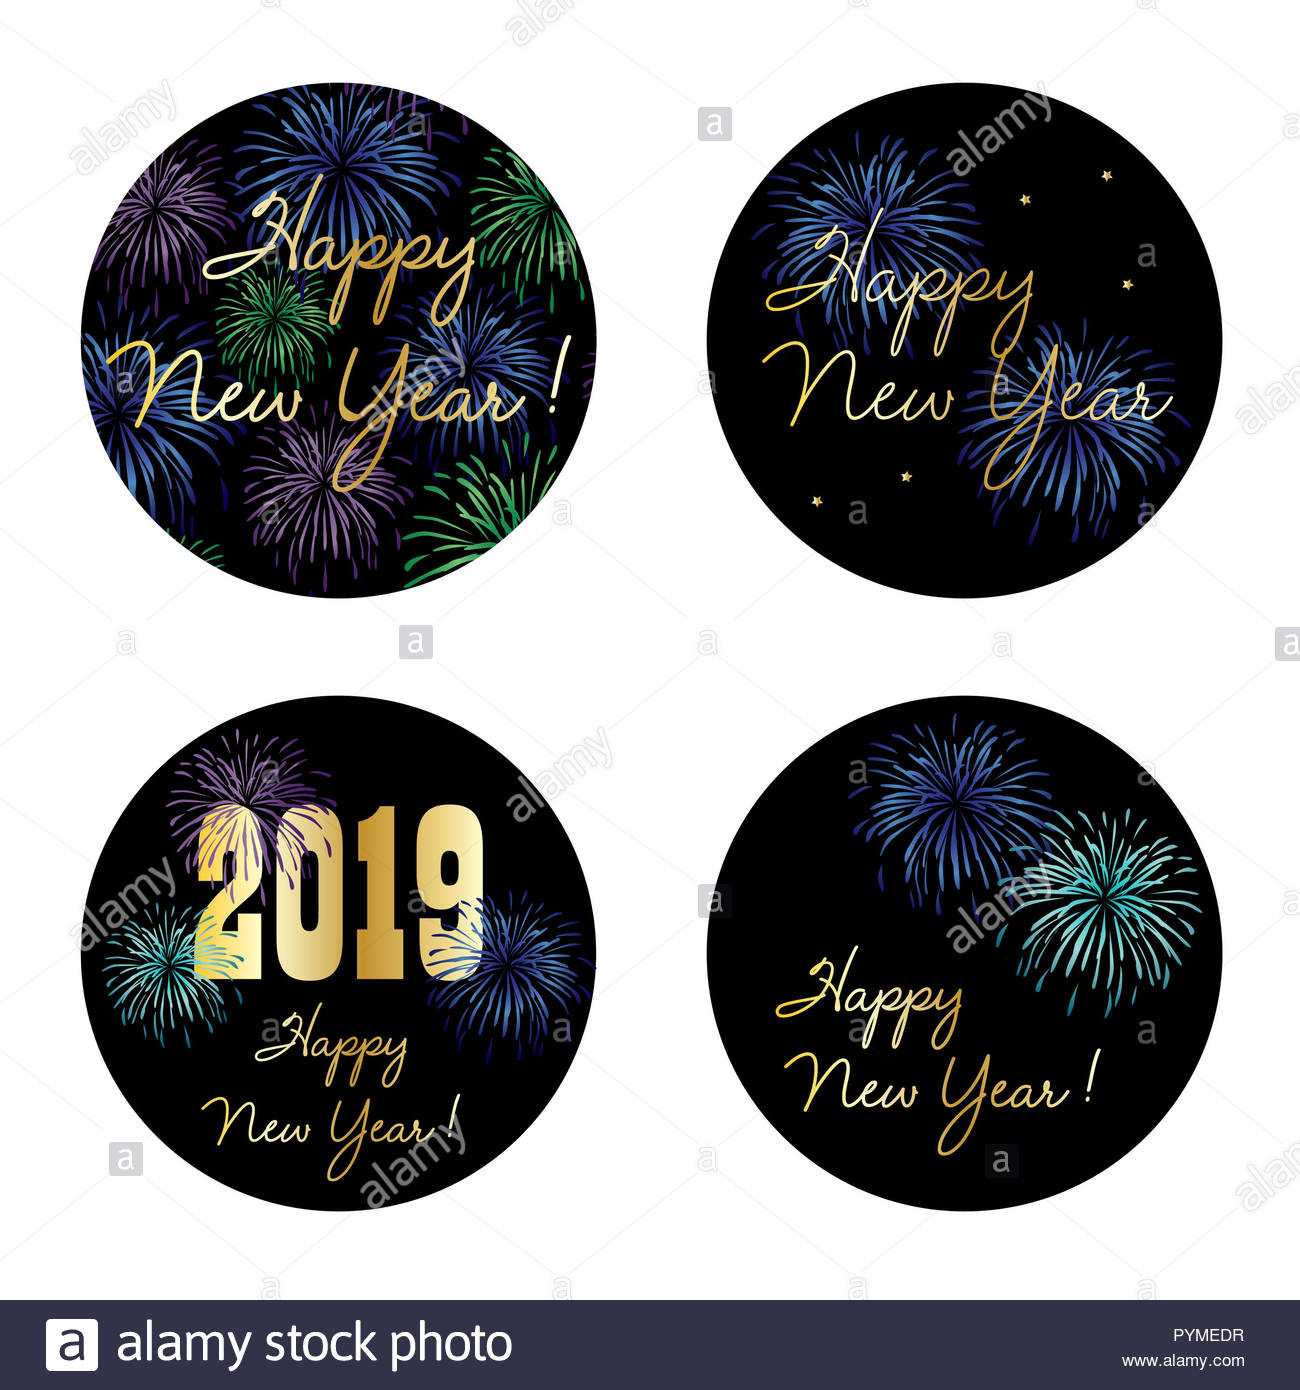 New Years eve 2019 circle vector graphics avec Fireworks Photo Stock